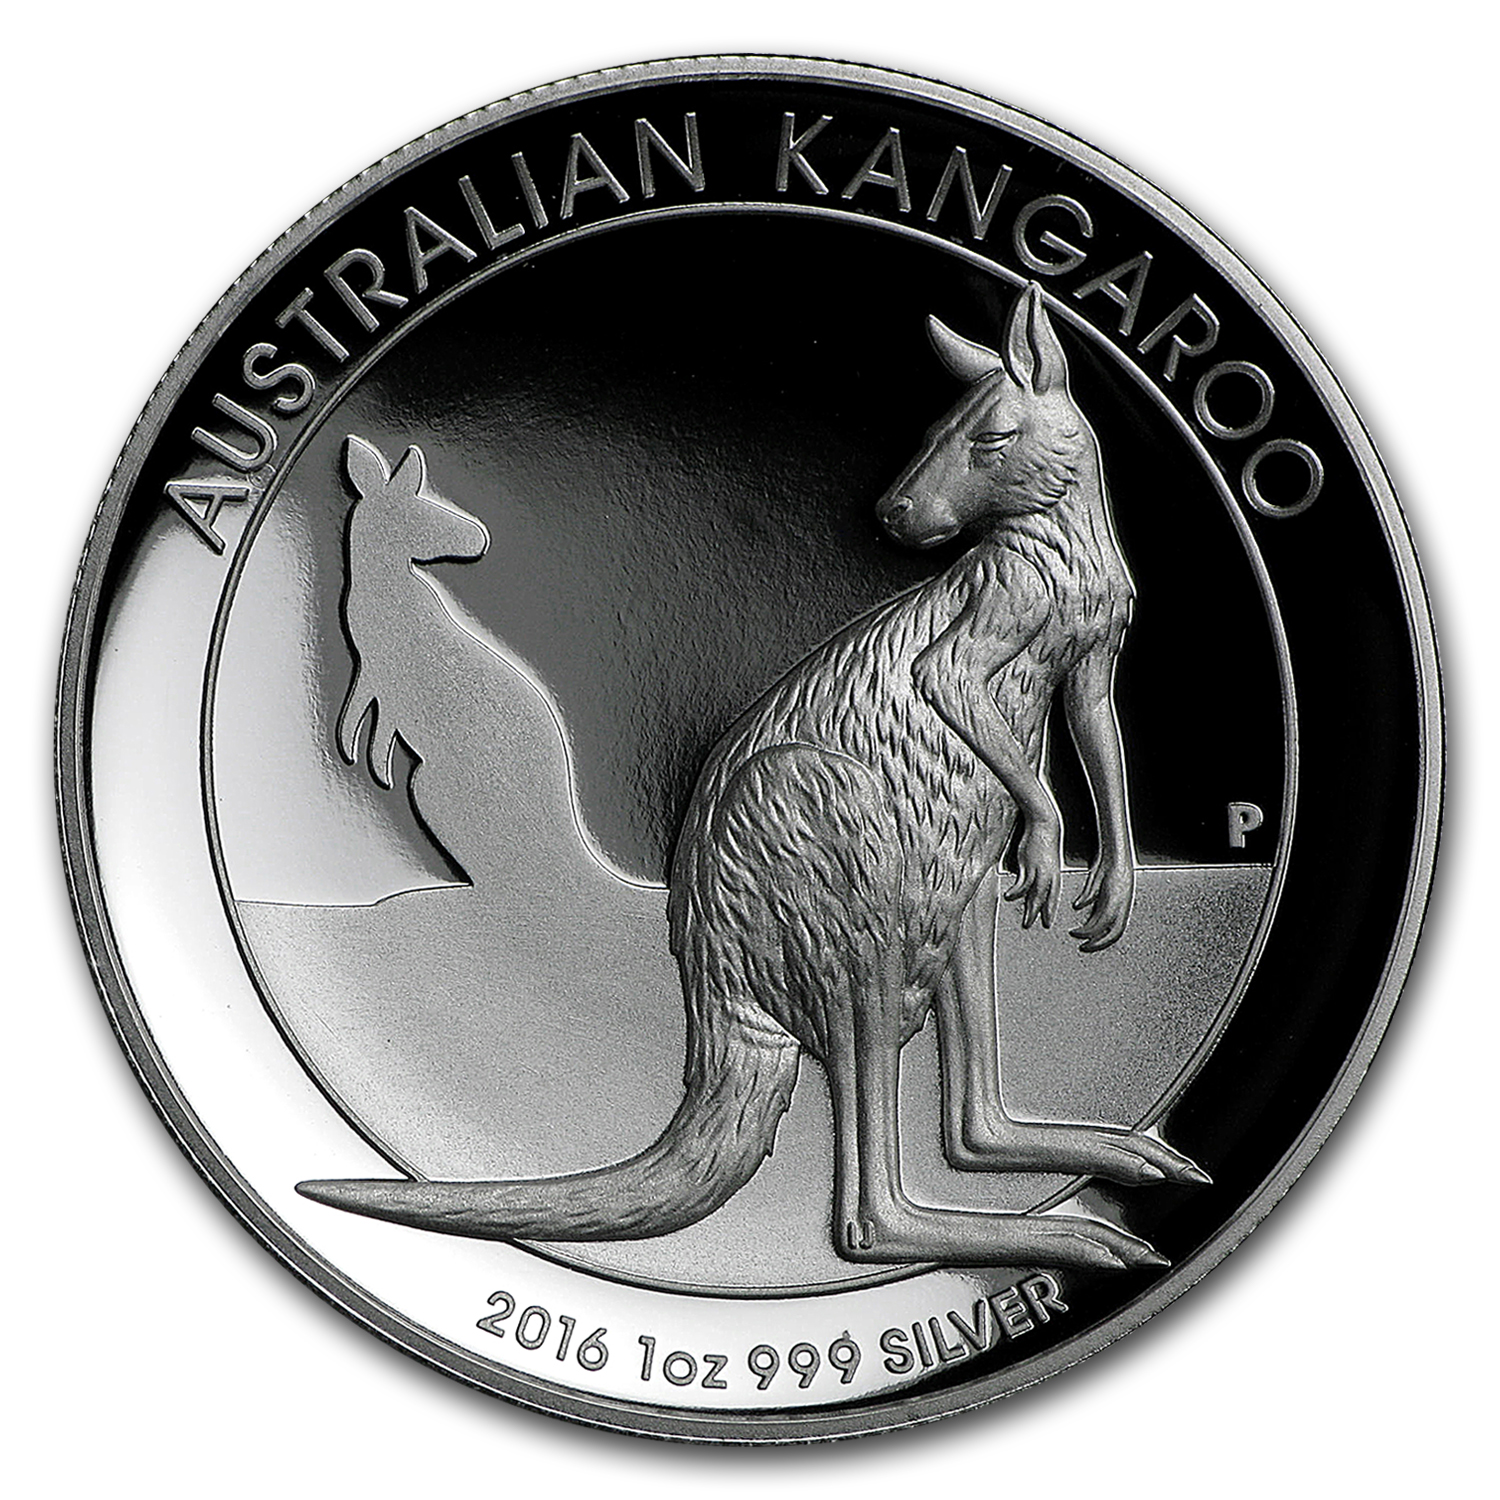 2016 Australia 1 oz Silver Kangaroo Proof (High Relief)